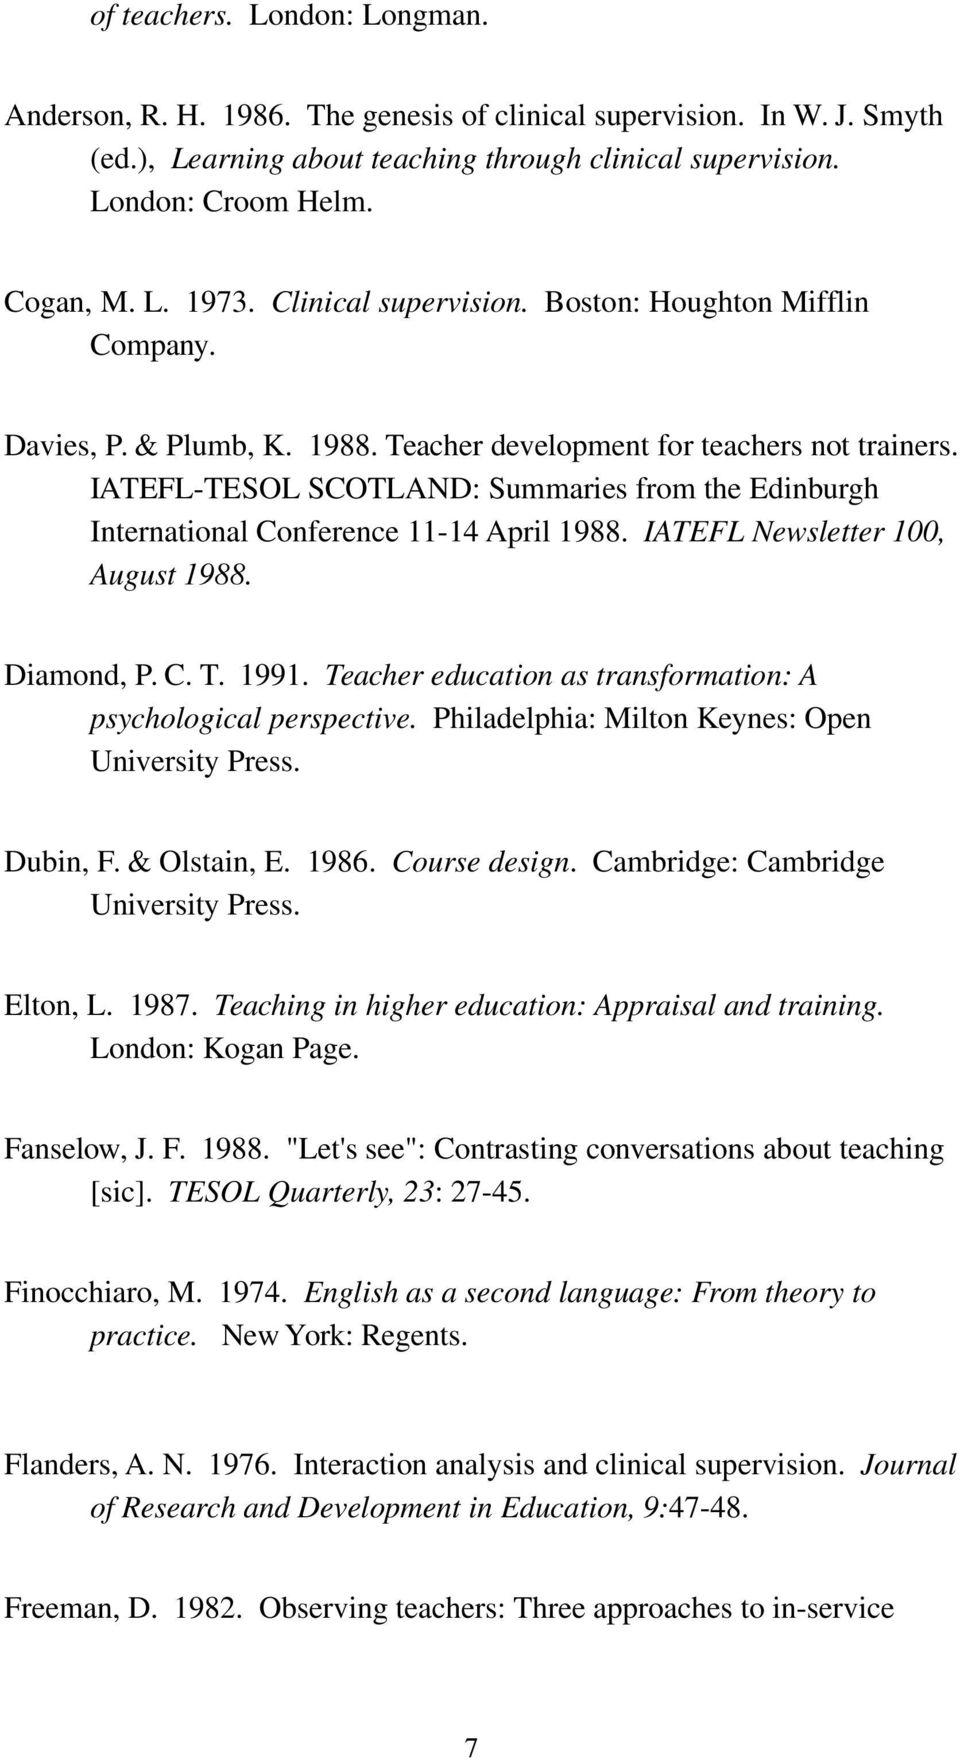 IATEFL-TESOL SCOTLAND: Summaries from the Edinburgh International Conference 11-14 April 1988. IATEFL Newsletter 100, August 1988. Diamond, P. C. T. 1991.